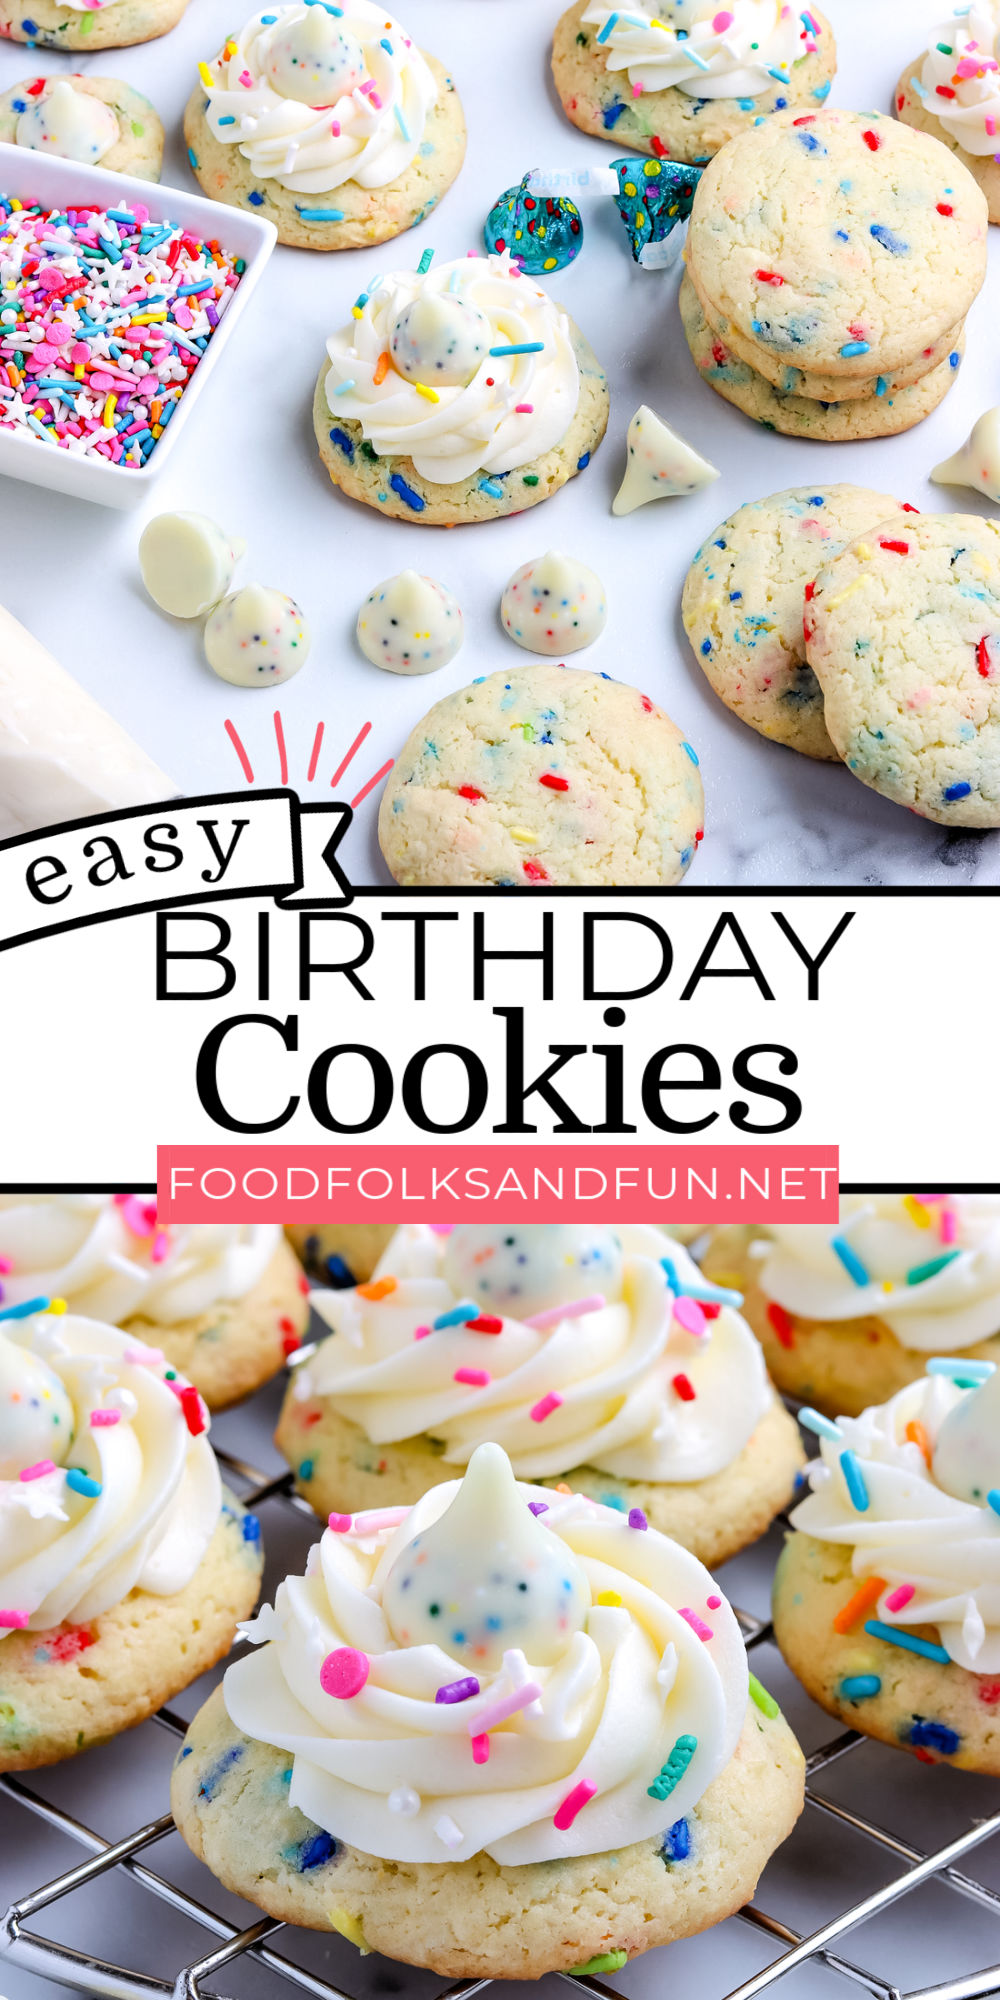 This Birthday Cookies Recipe is made with cake mix, buttercream frosting, and birthday cake chocolate kisses. They're an easy festive treat. via @foodfolksandfun